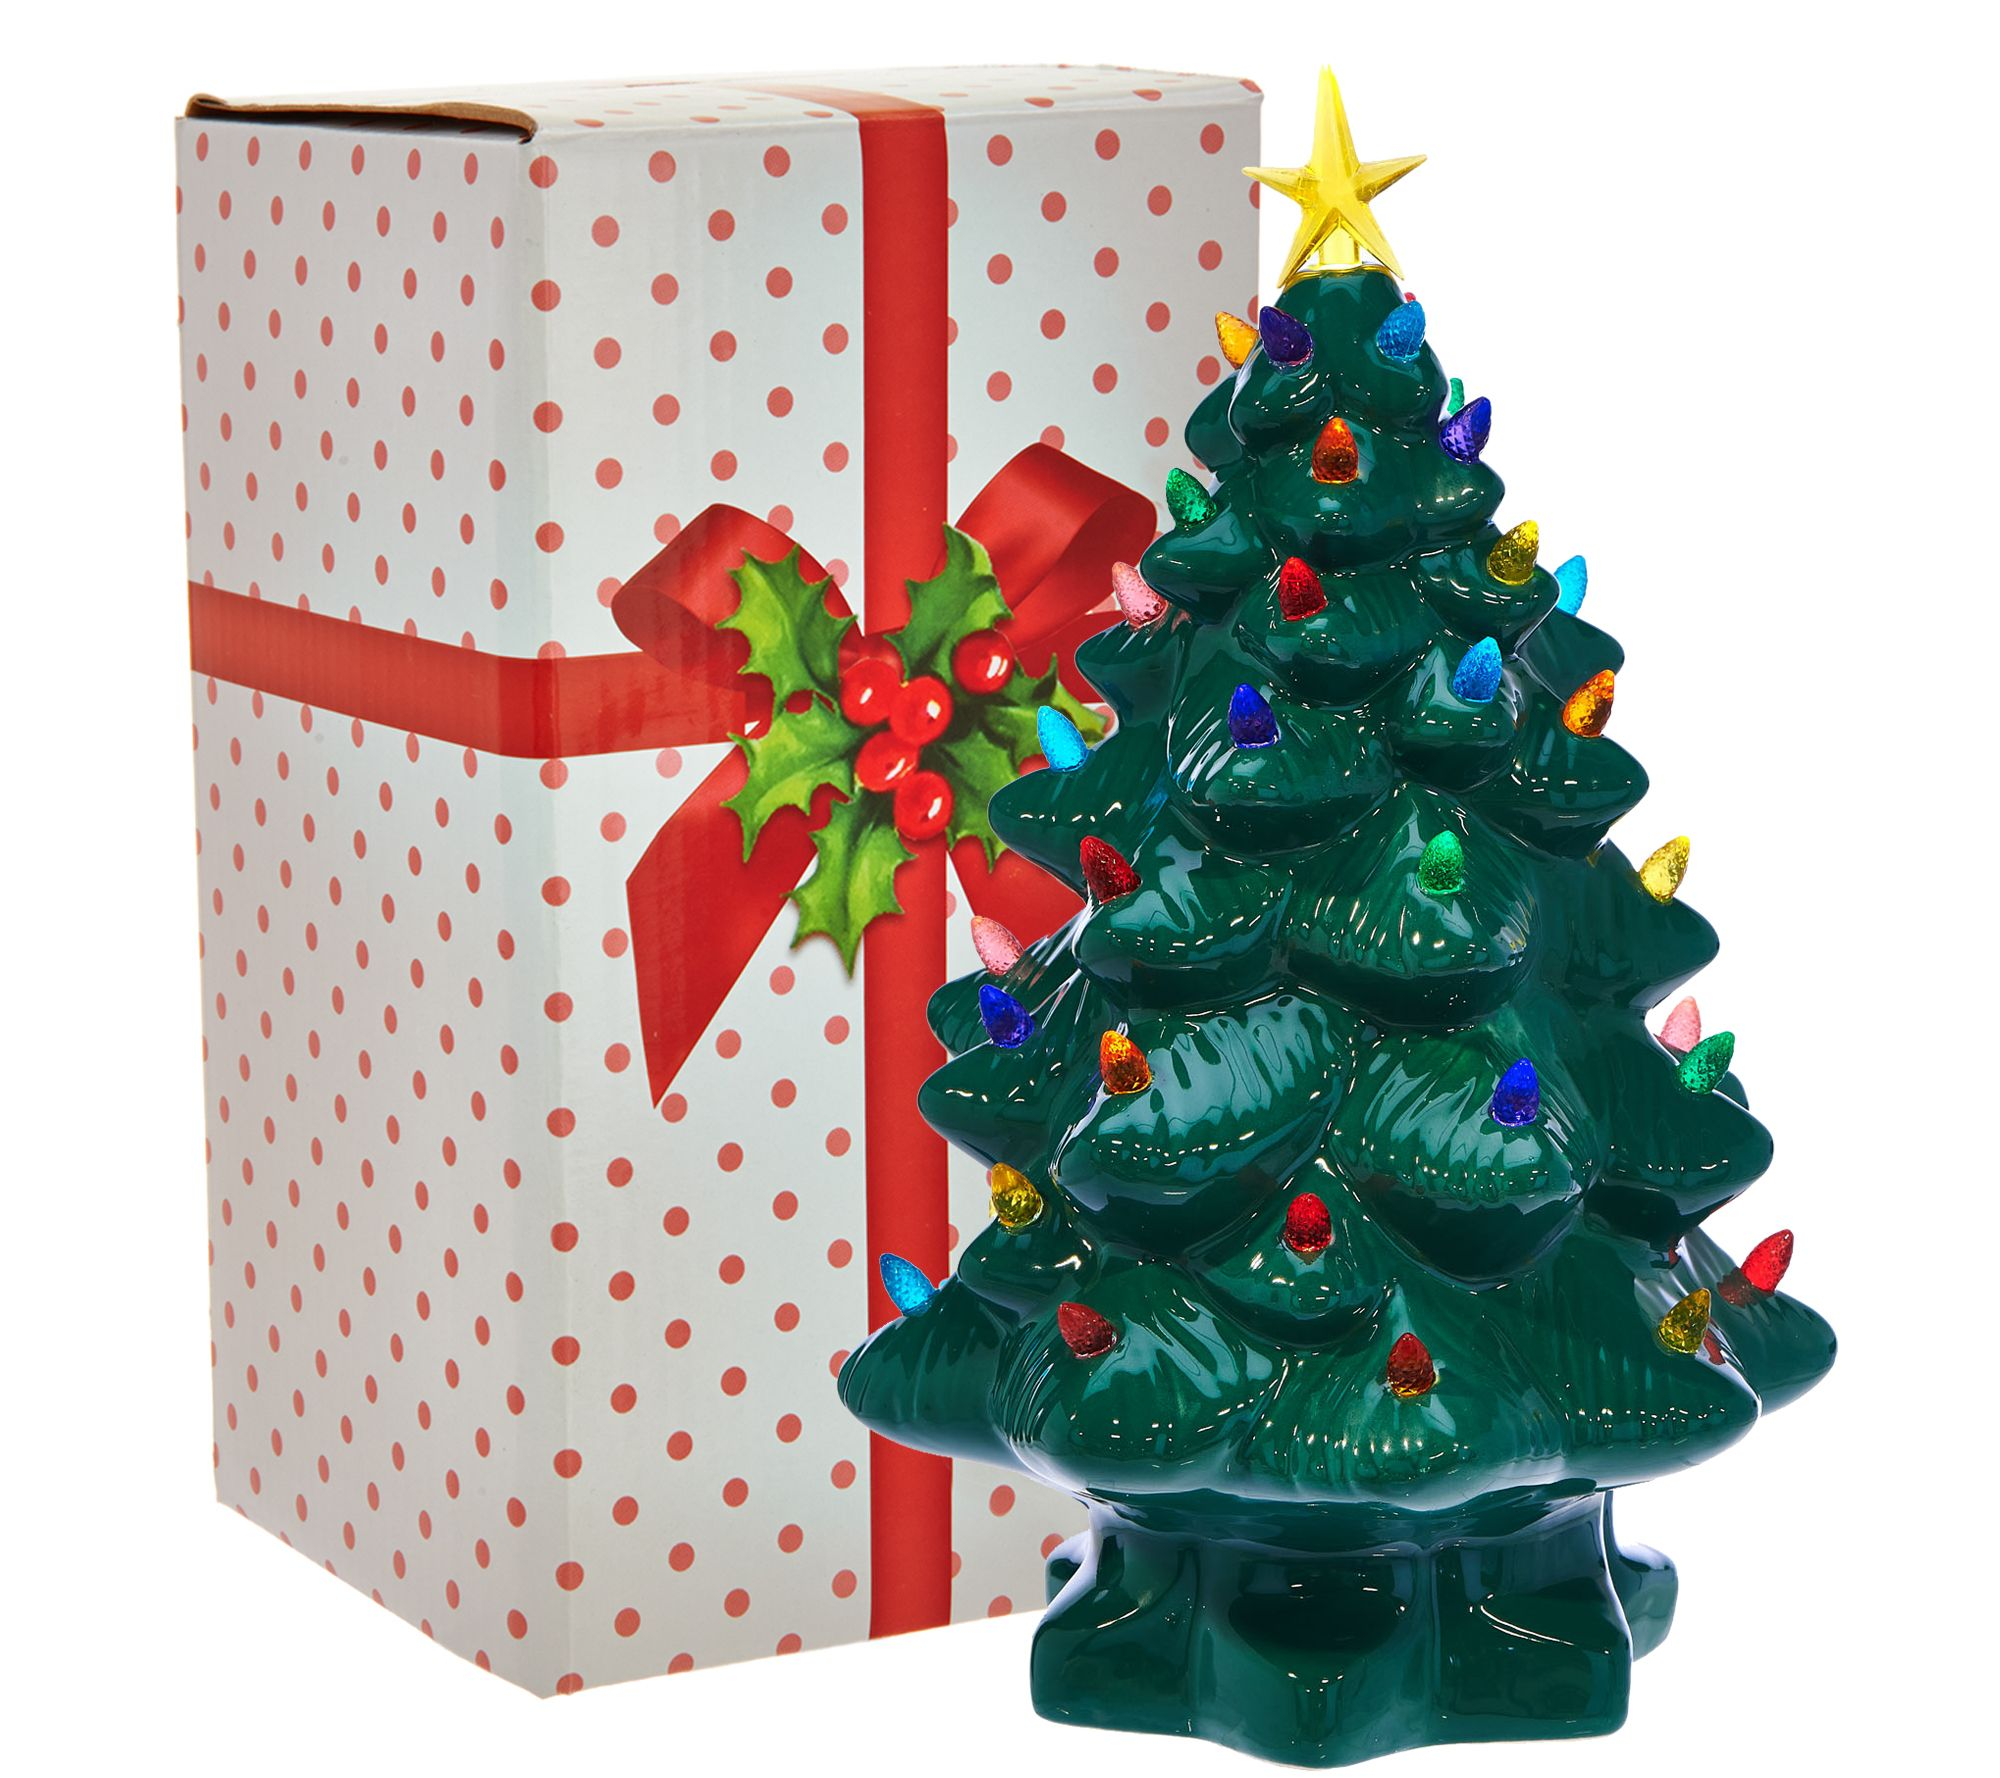 mr christmas 14 nostalgic tabletop tree w super bright led lights page 1 qvccom